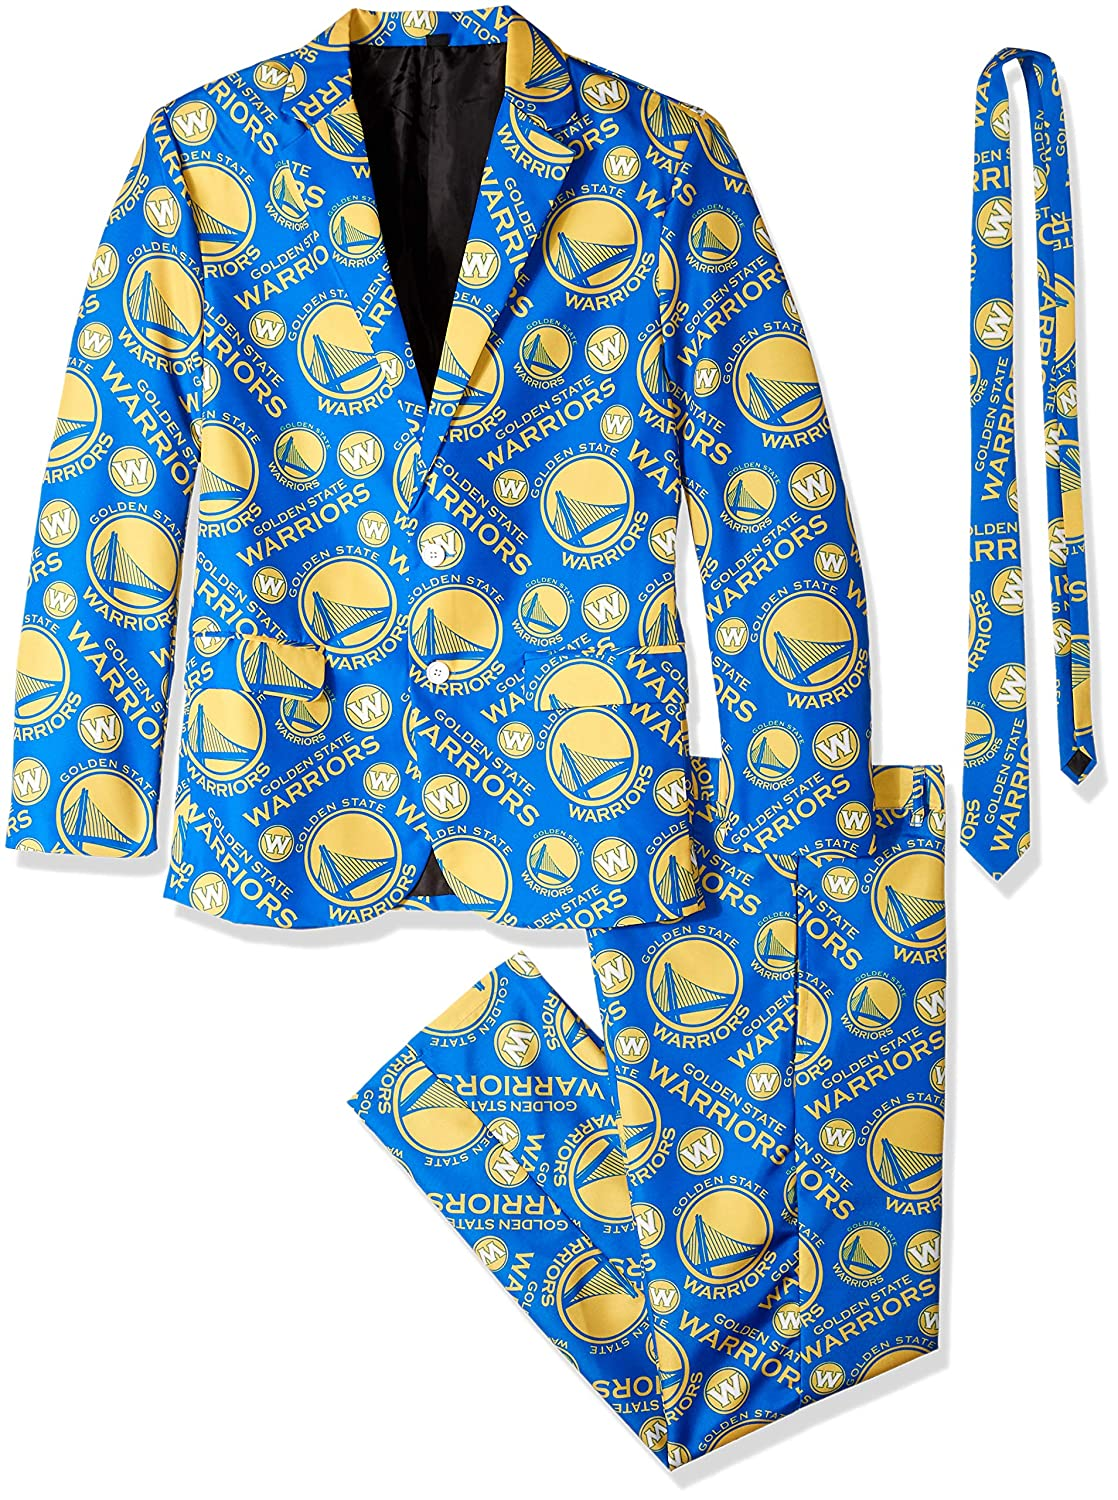 Golden State Warriors Nba Repeat Print negocios suit ...